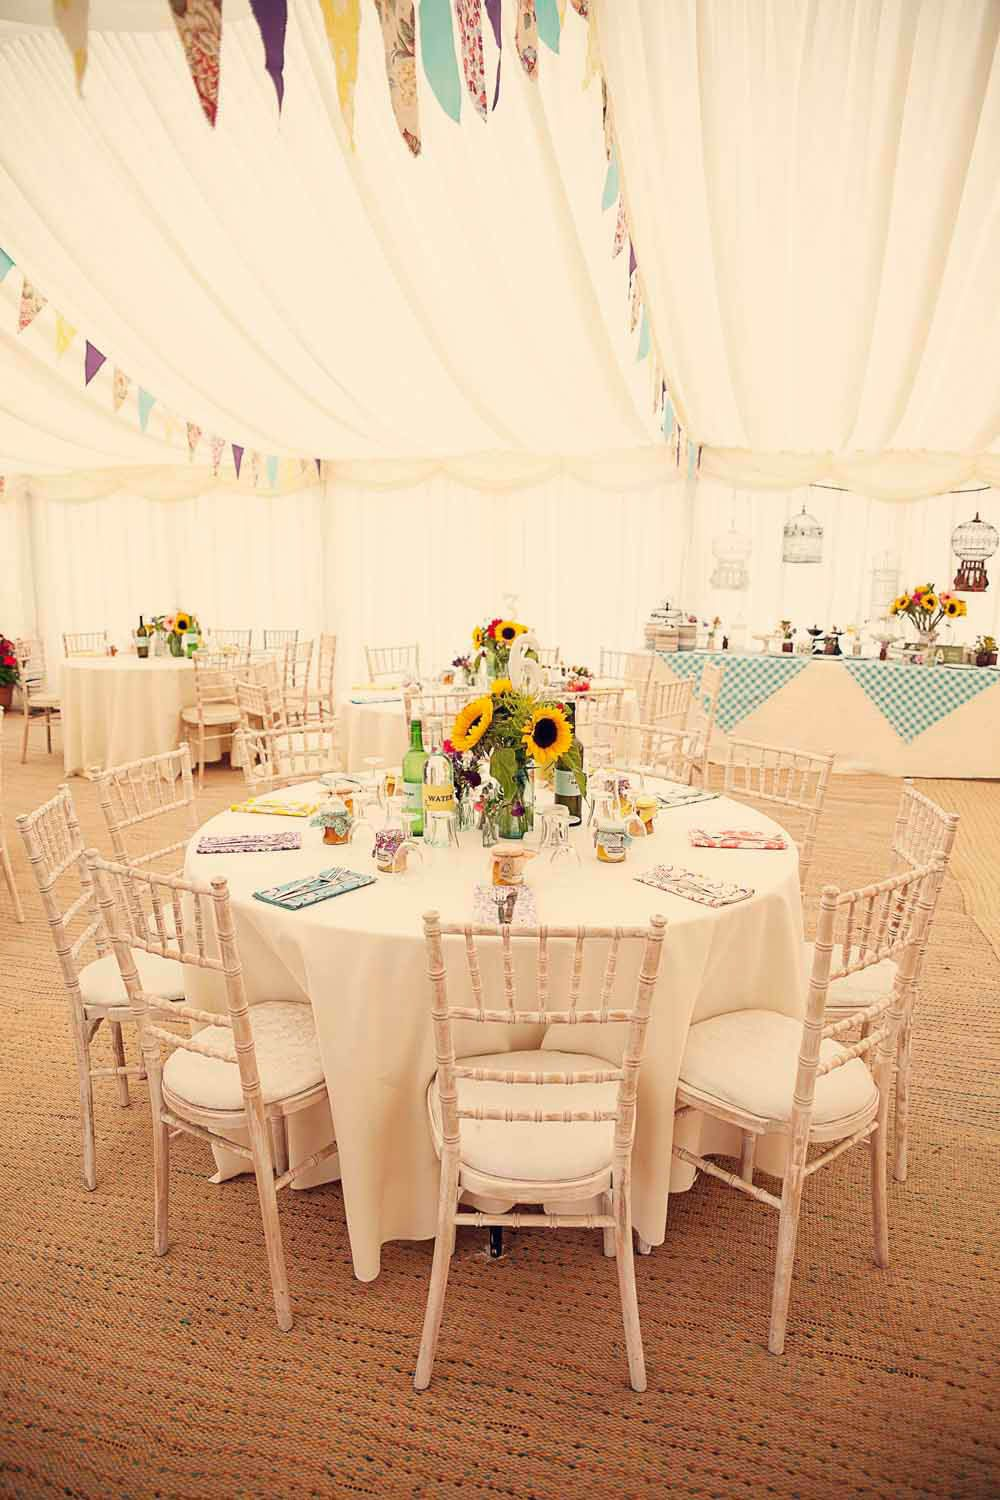 50s wedding decoration ideas  A Quintessentially English Country Garden Wedding Liz u Blake